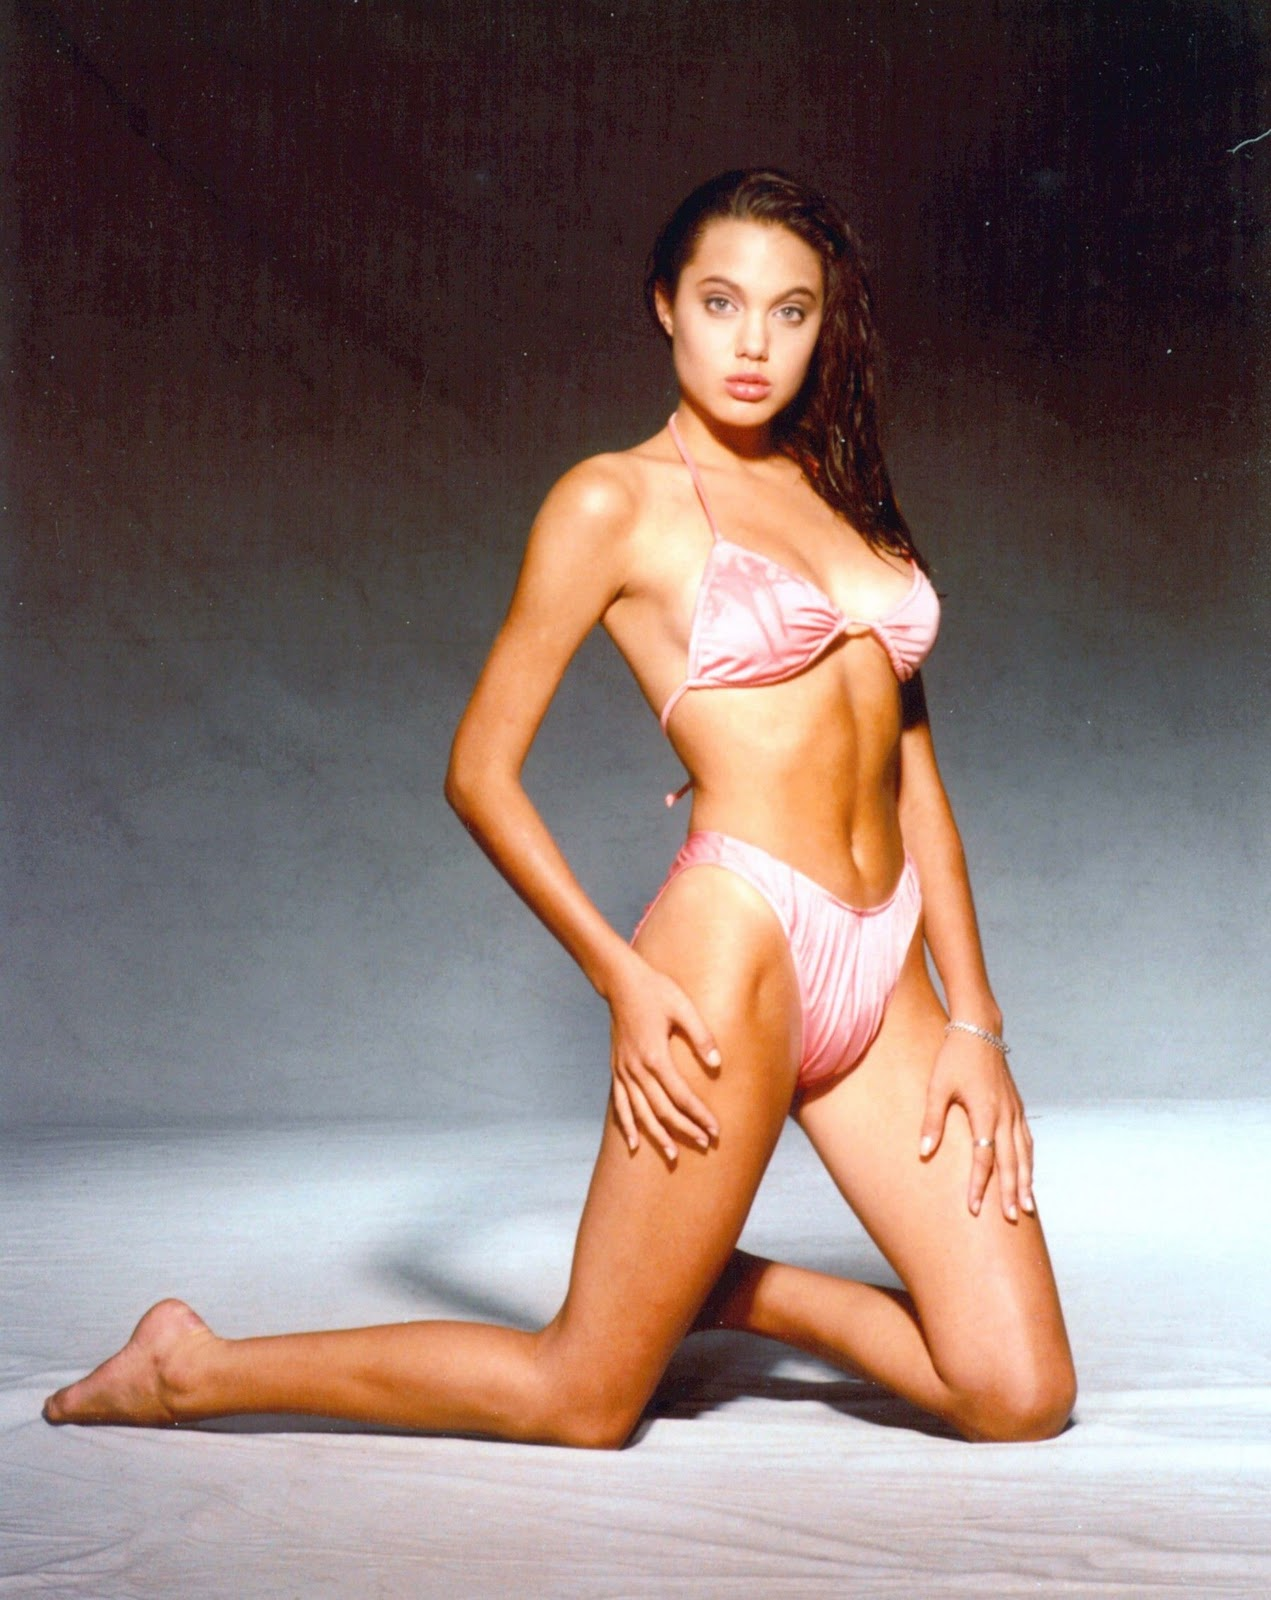 Angelina Jolie Fucking Pic angelina jolie young porn - pics and galleries